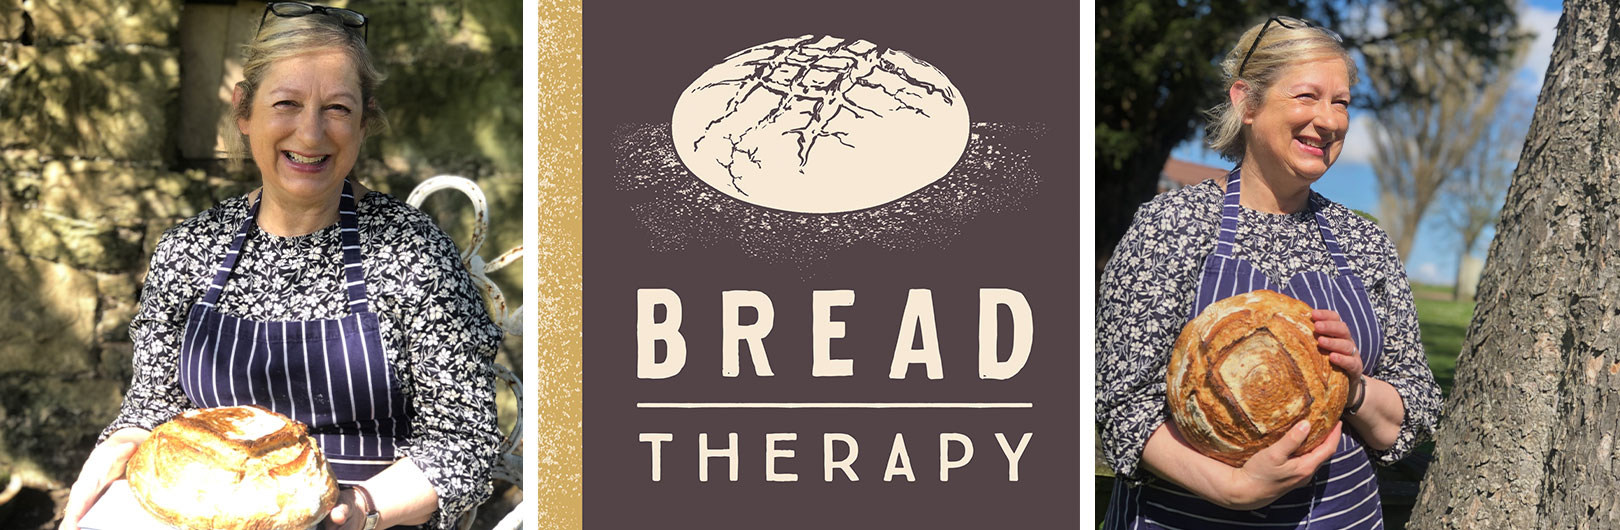 Five minutes with…Pauline Beaumont, author of Bread Therapy